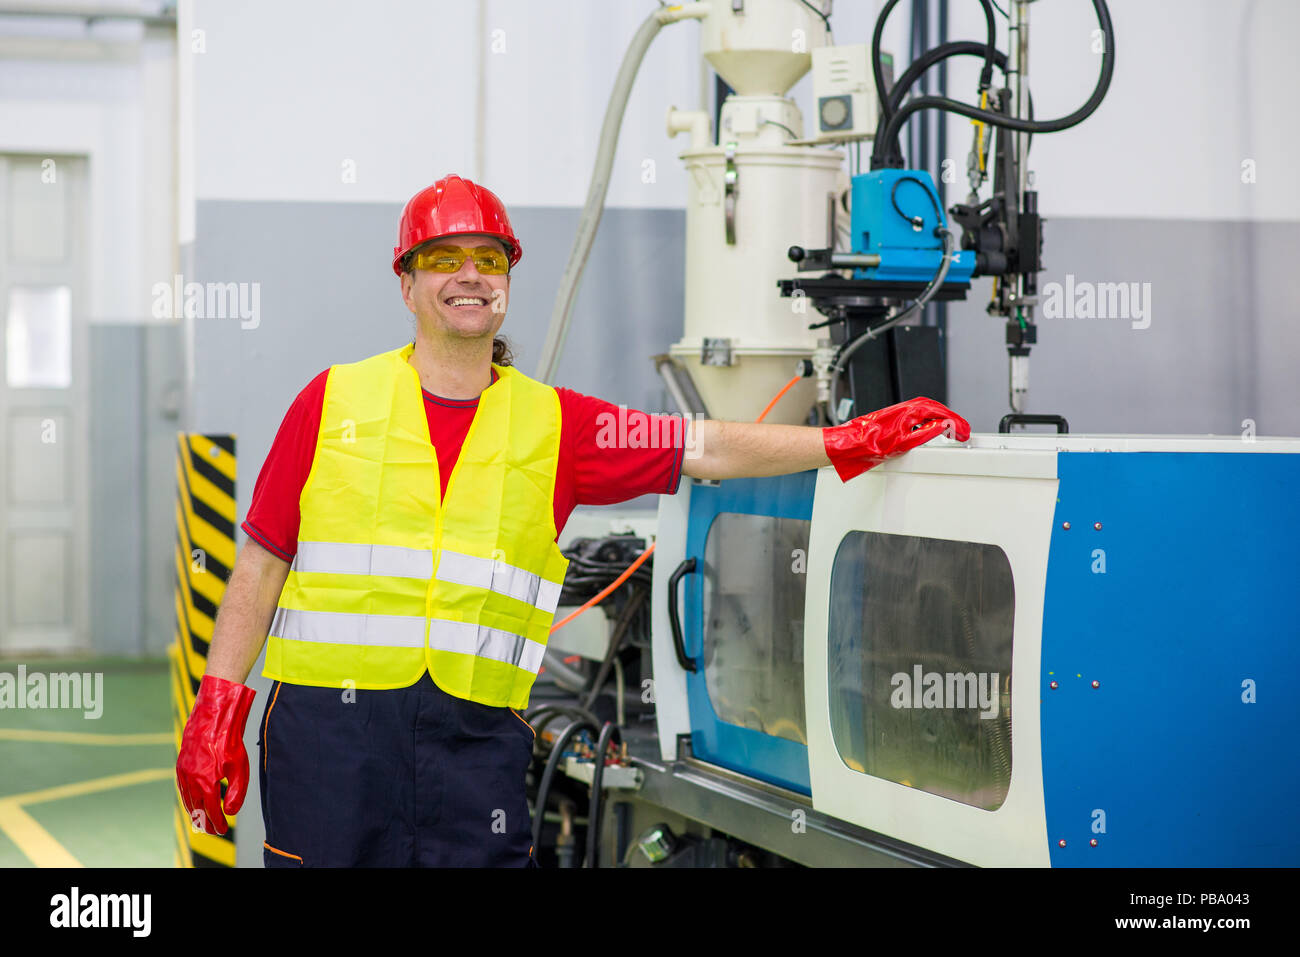 Smiling factory technician looking at a camera with one hand on a machine - Stock Image